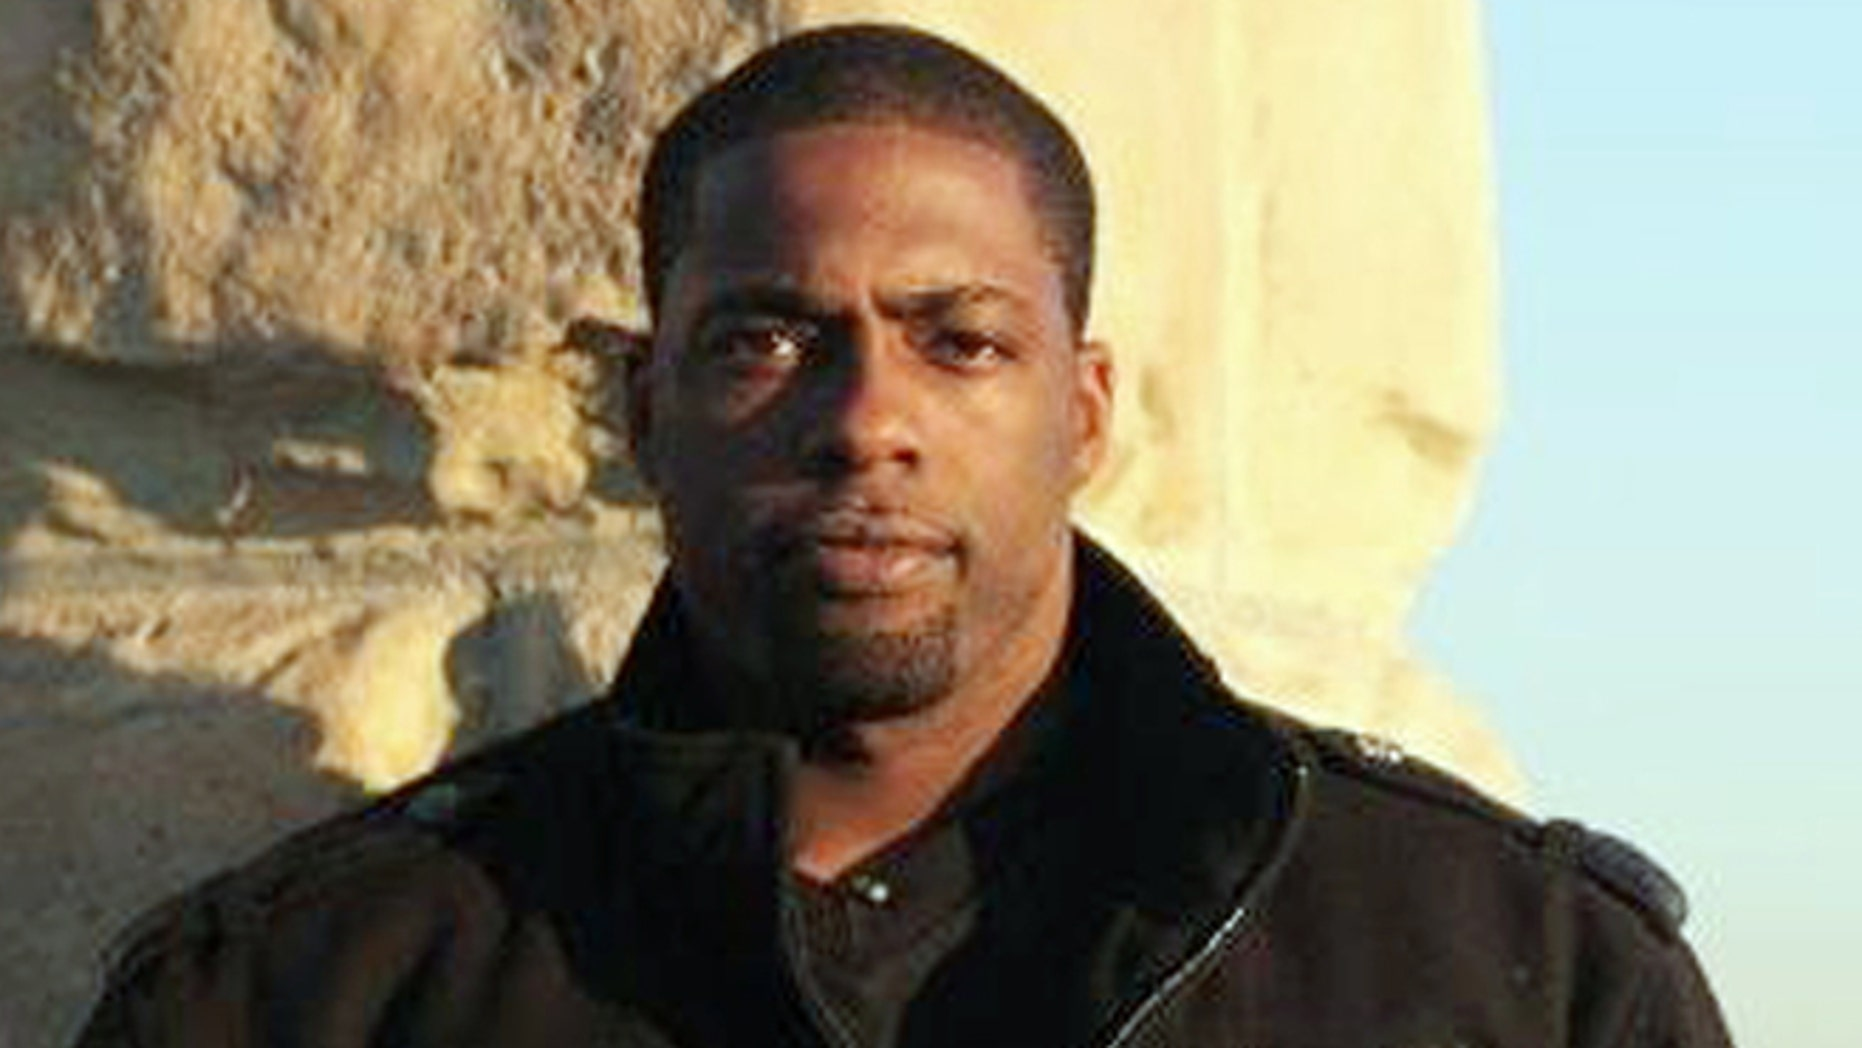 This undated image provided by the California Western School of Law shows Brian Banks, who is challenging his 2002 rape conviction during a hearing scheduled for Thursday May 24, 2012, after his accuser, Wanetta Gibson, recently recanted her testimony.